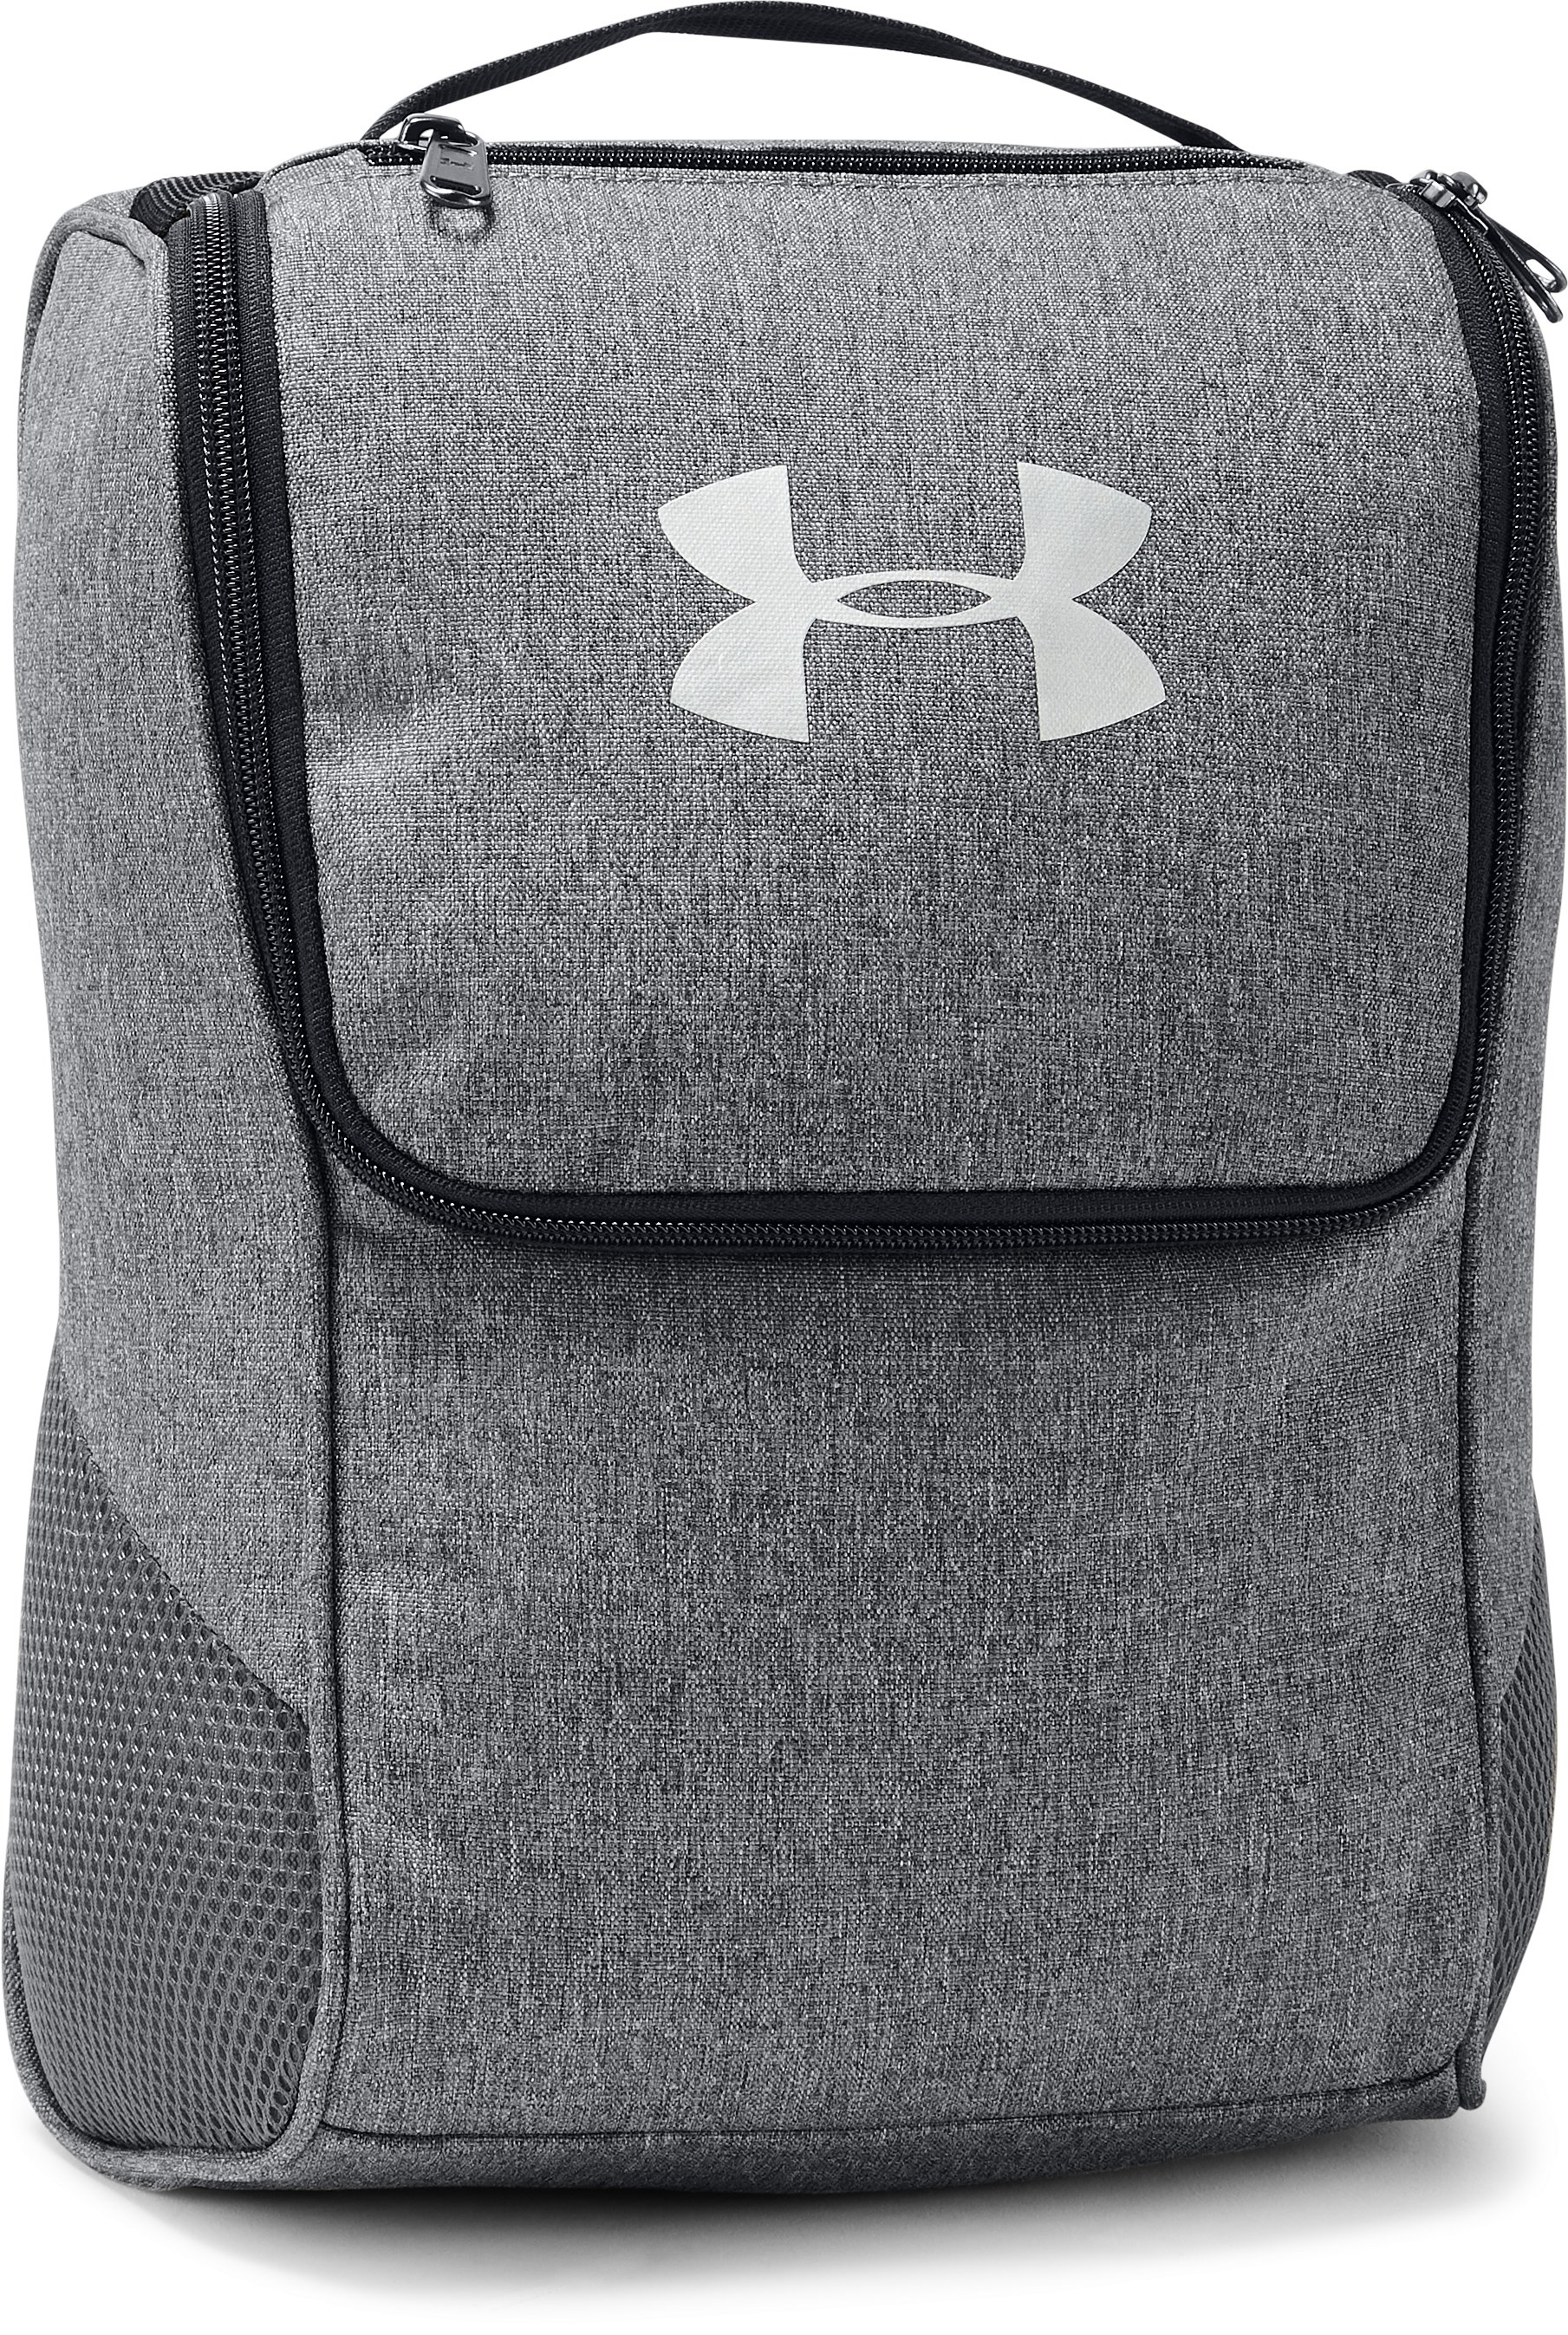 UA Shoe Bag, GRAPHITE MEDIUM HEATHER